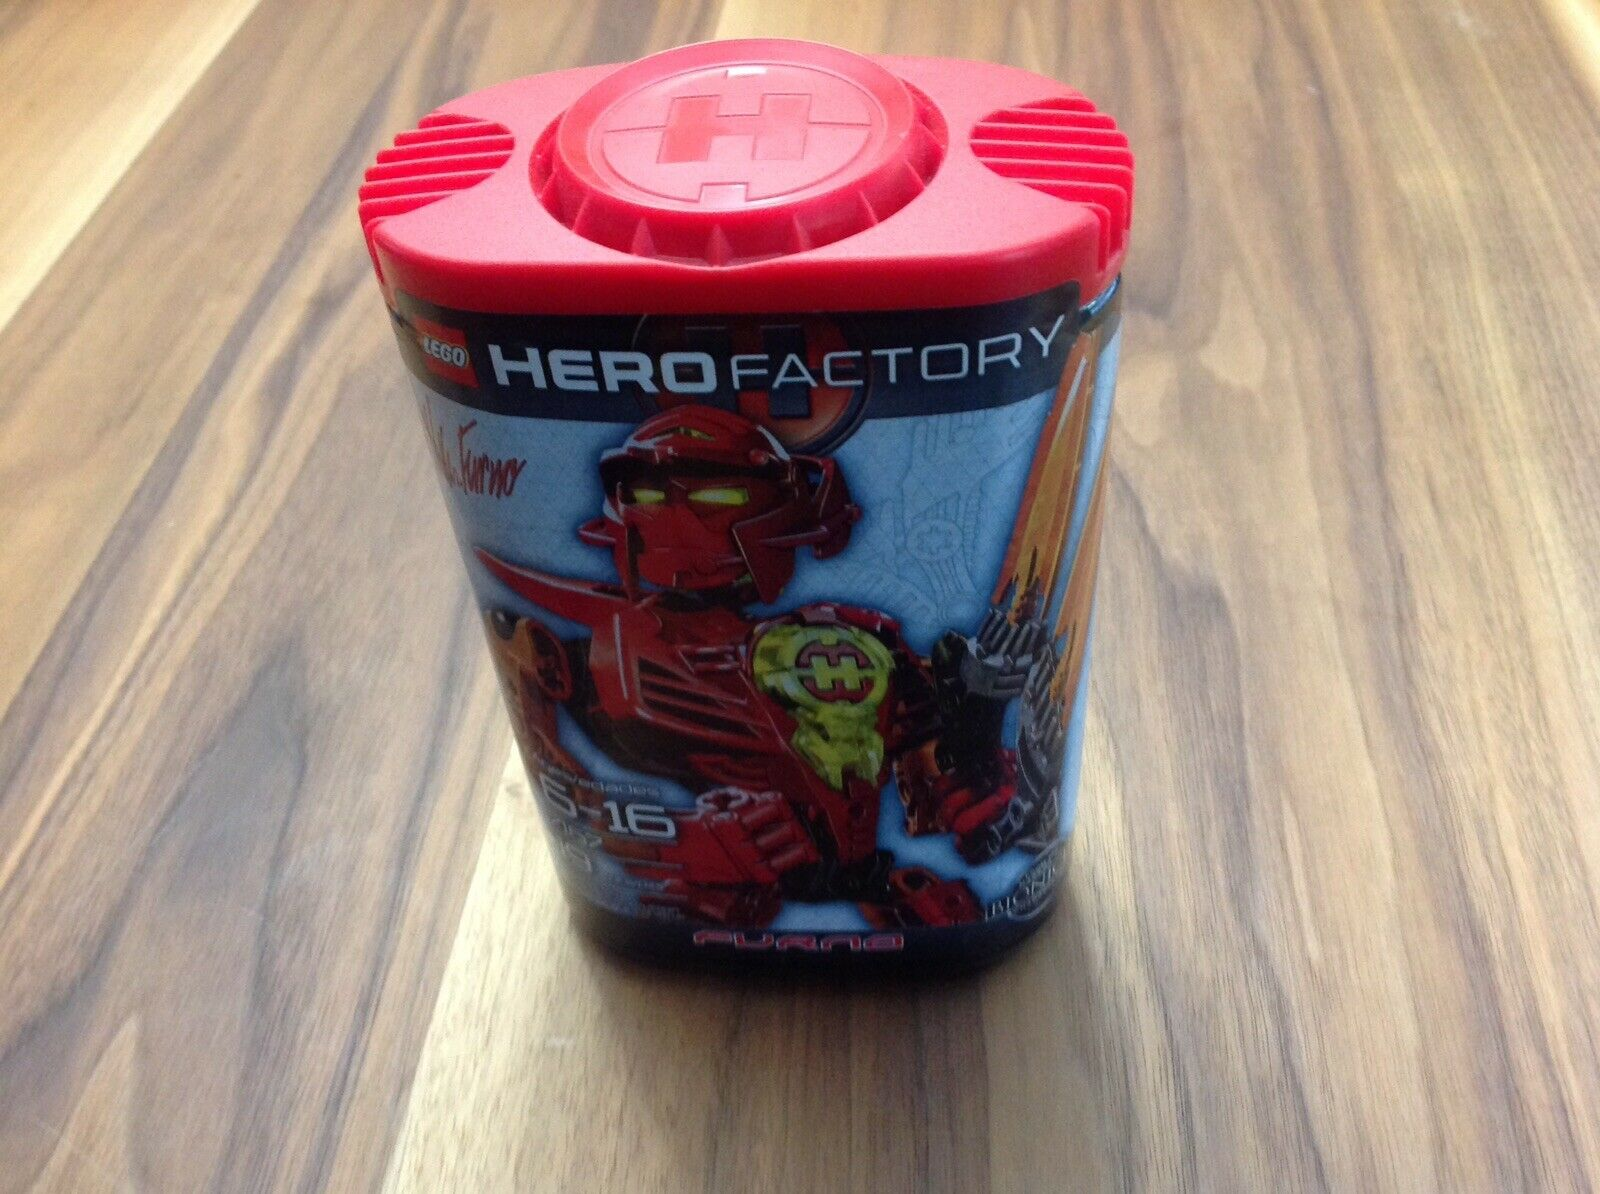 Lego Herofactory Furno (7167) from the makers of Bionicle  voitureactères  classique intemporel